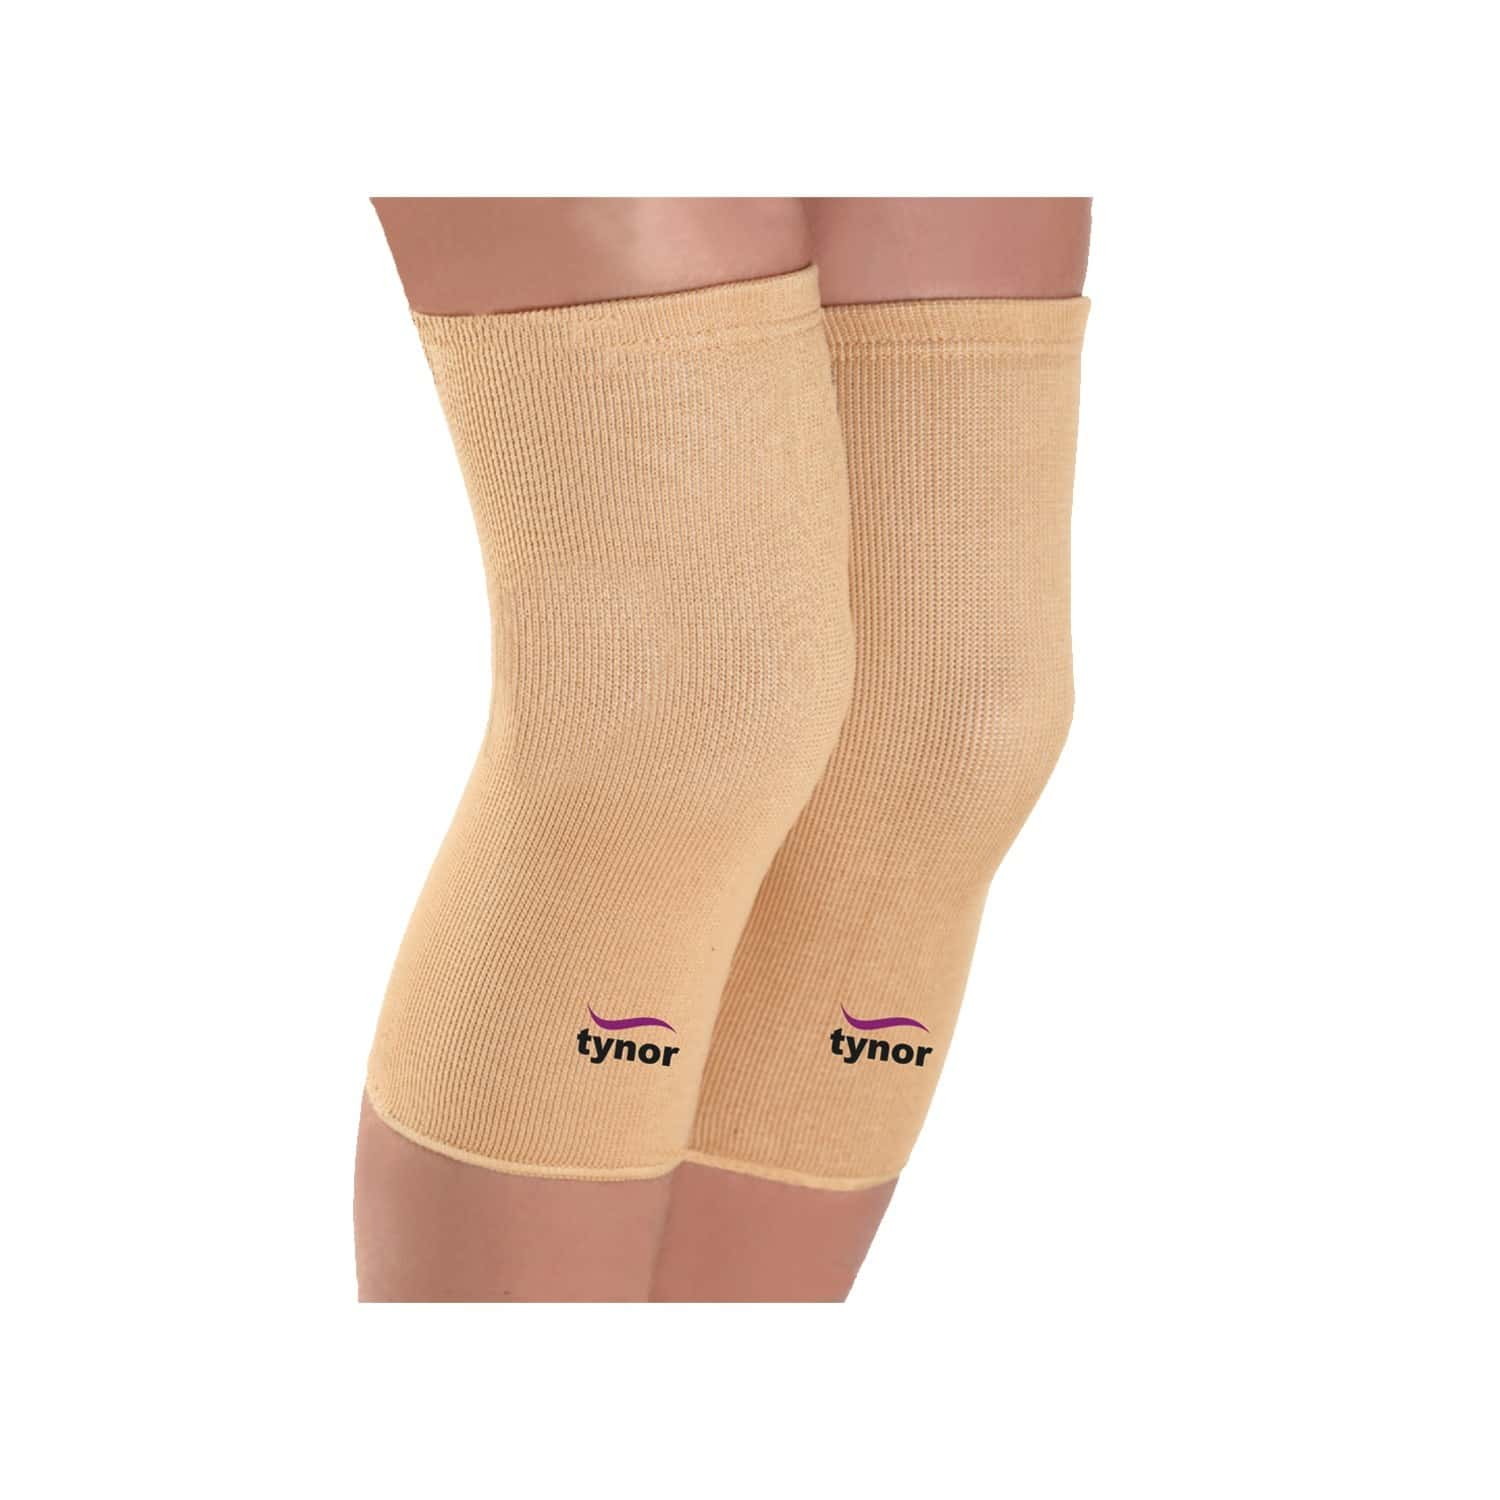 Tynor Knee Cap Pair ( Relieves Pain, Support, Uniform Compression) - Xl